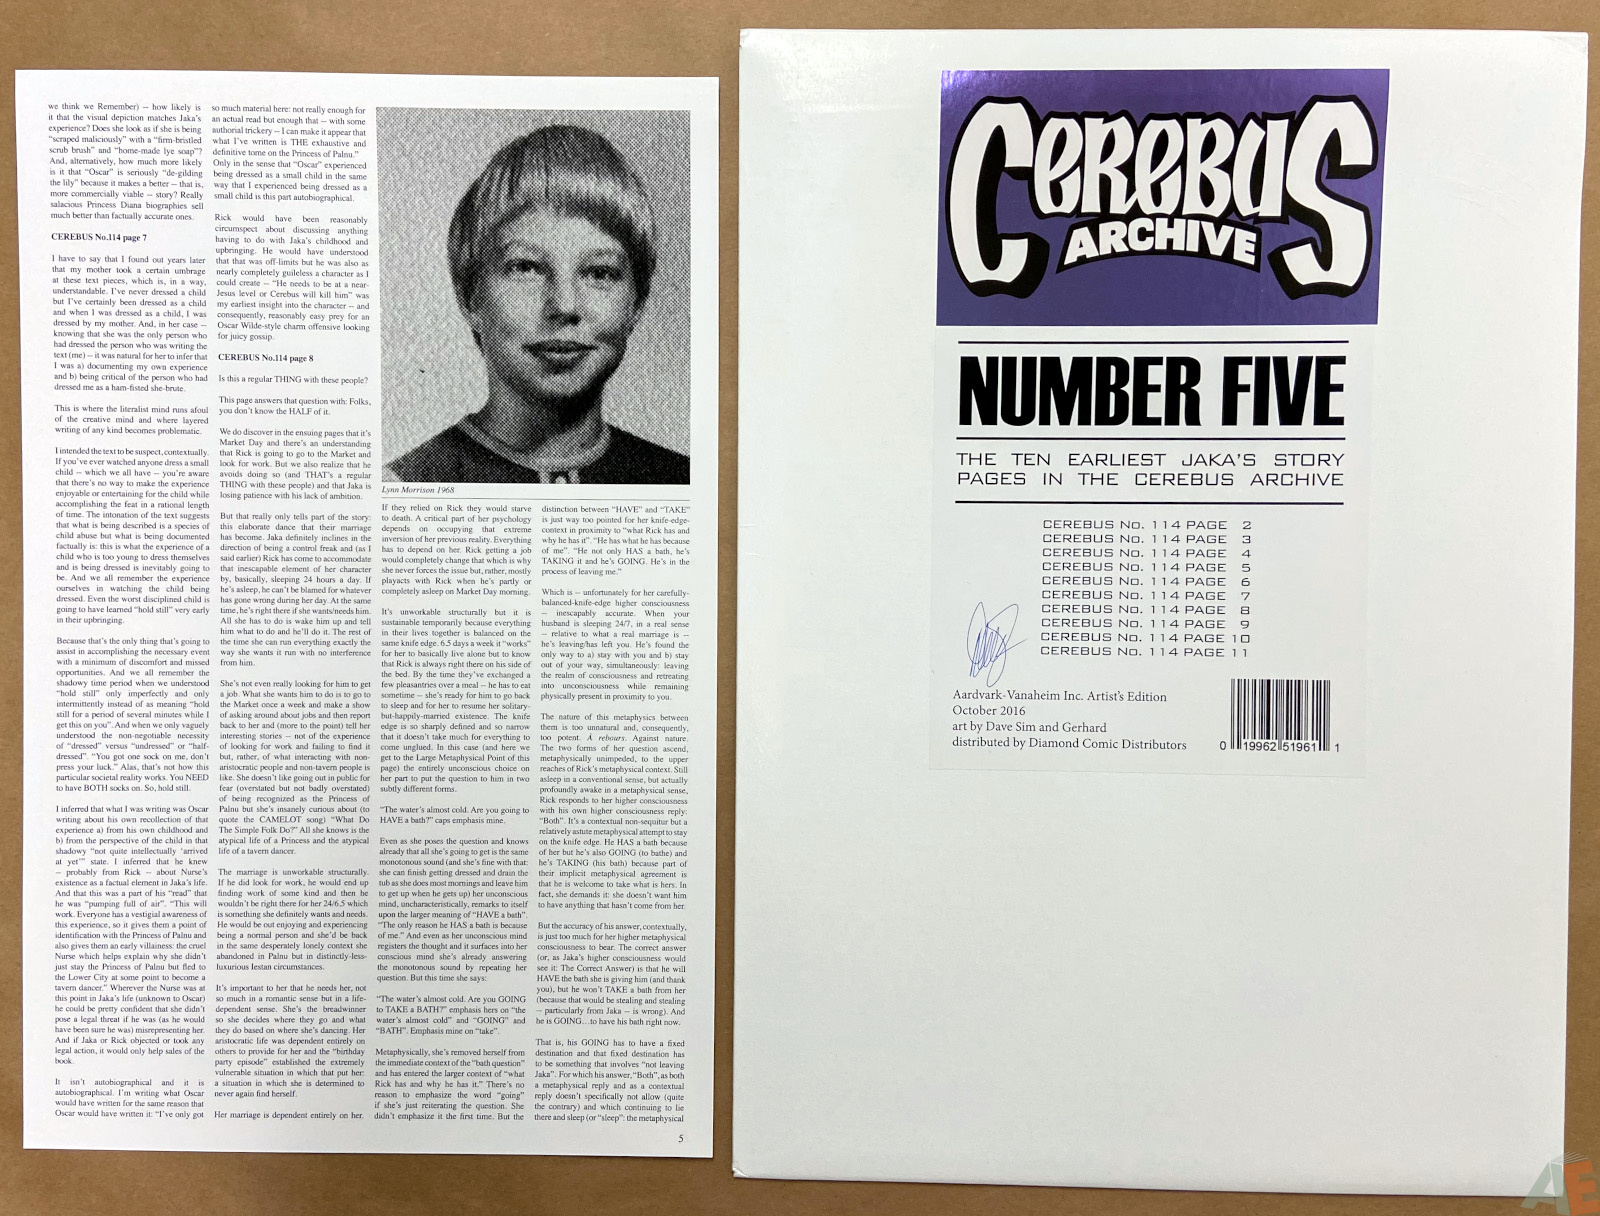 Cerebus Archive Number Five 16